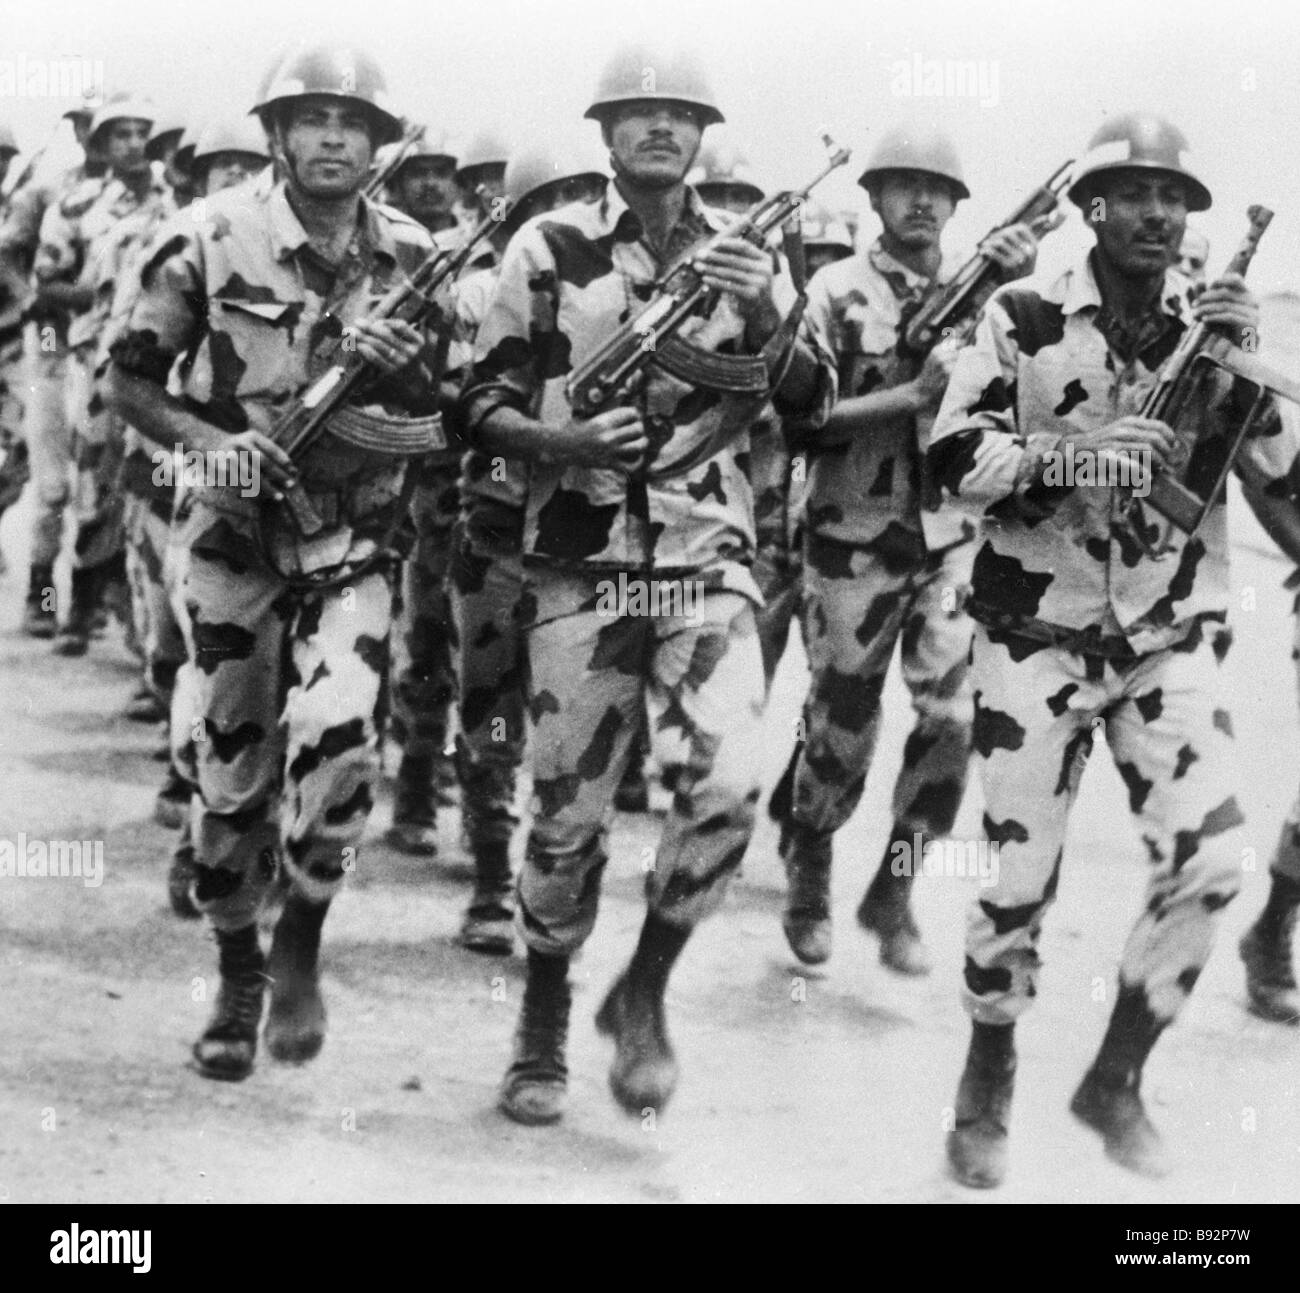 Egyptian army men on march - Stock Image